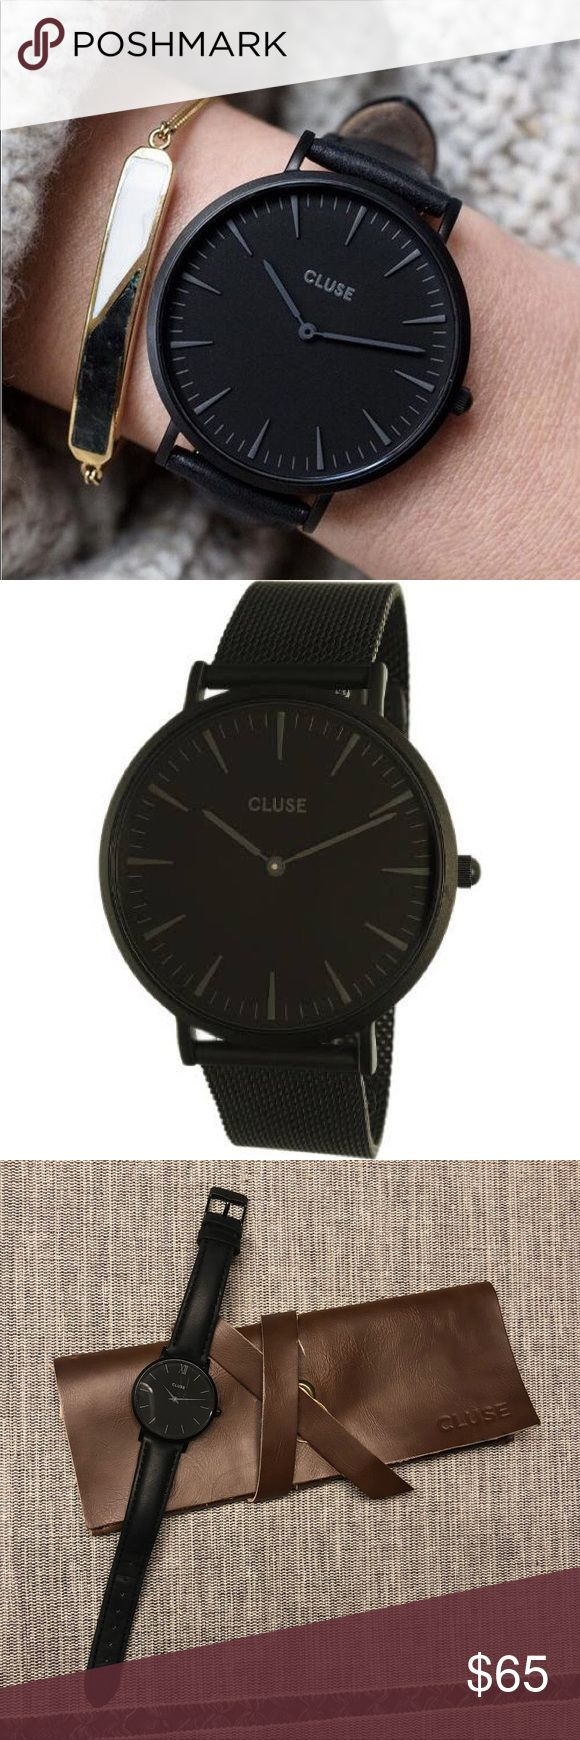 Cluse Minuit Full Black Watch Beautiful minimalist Swedish watch, lovingly used! Few hairline scratches on the face, as pictured, only visible in bright light. The straps are removable and can be interchanged with any other Cluse straps. Comes in original leatherette pouch. 16mm strap width. Case diameter 33mm. Cluse Accessories Watches